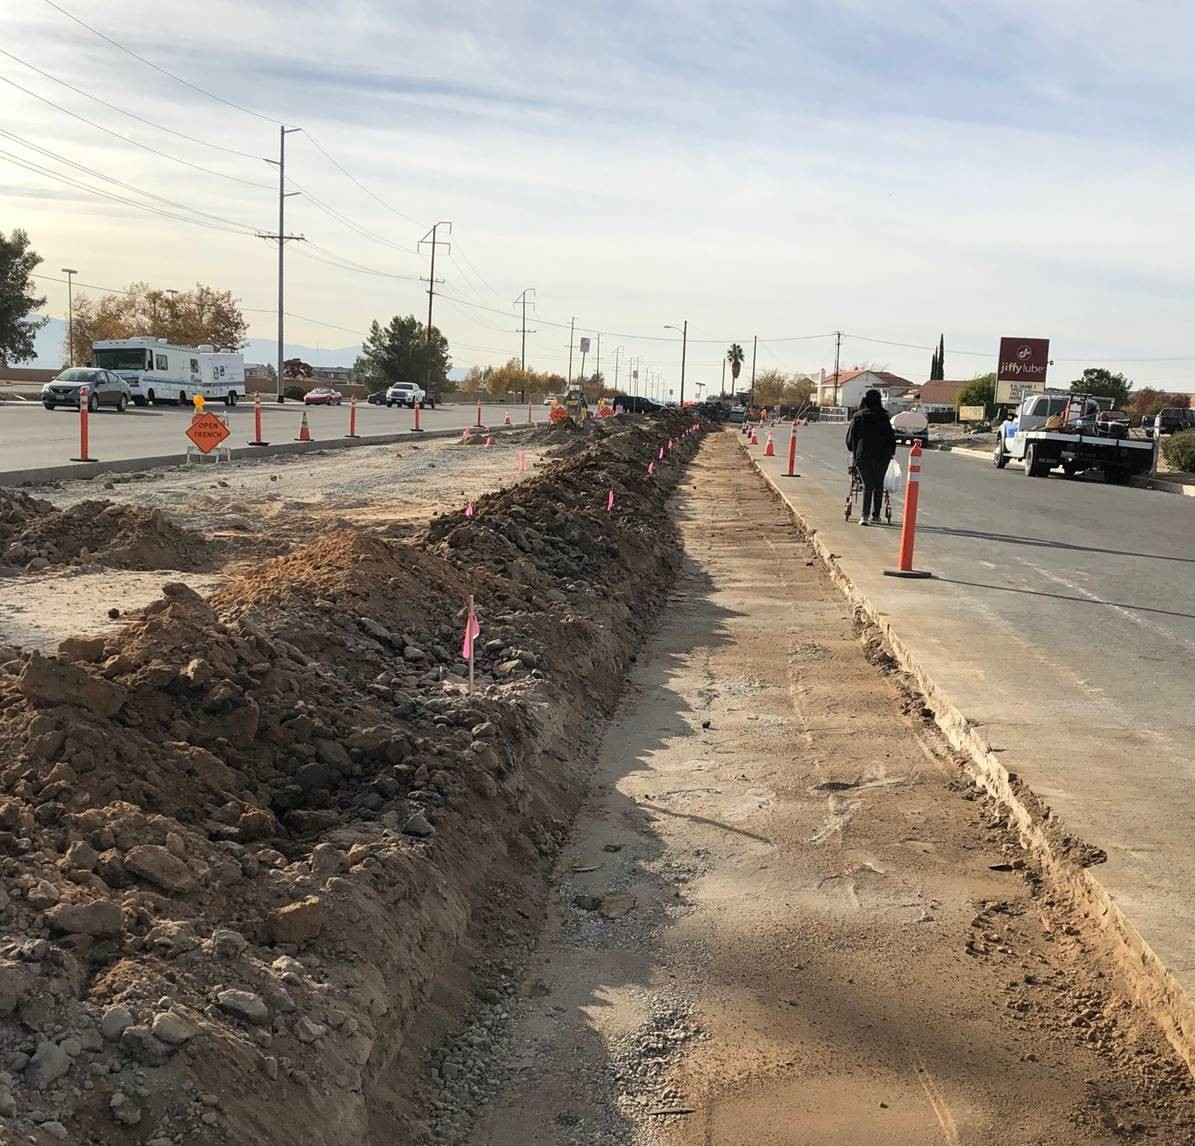 Construction begins on Apple Valley's Bus Stop Improvement Project